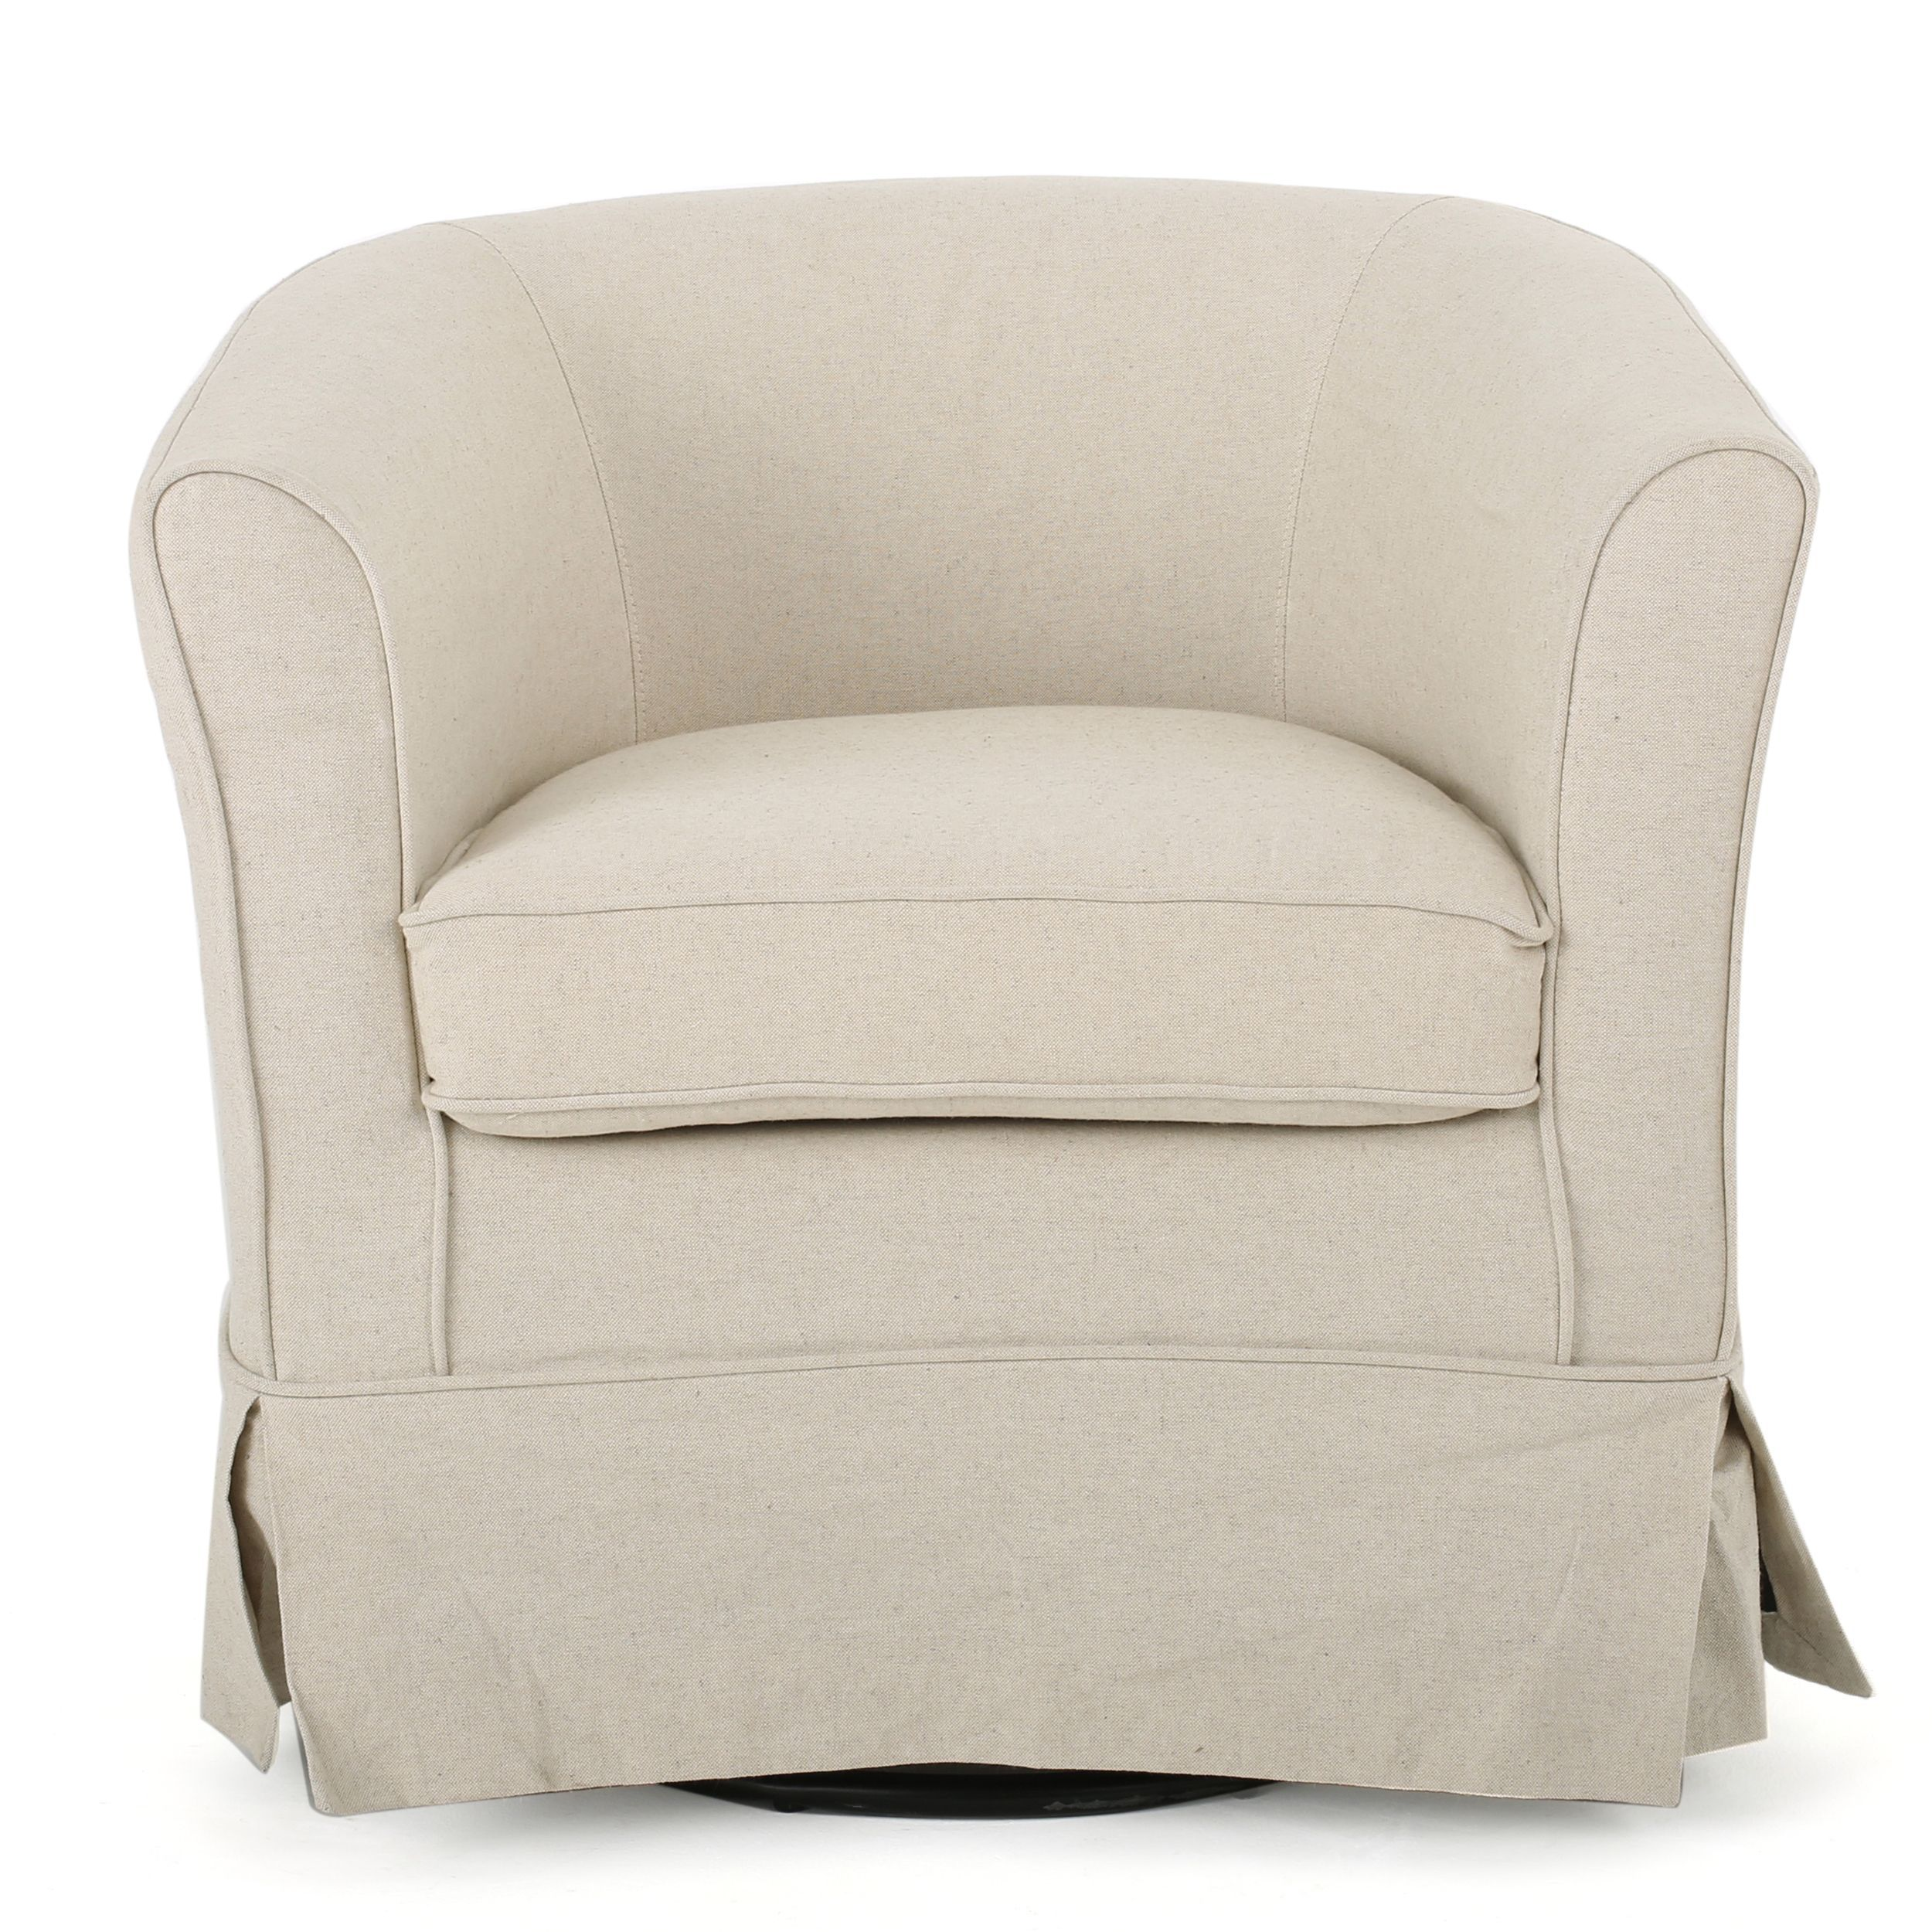 Tremendous Cecilia Fabric Swivel Club Chair By Christopher Knight Home Onthecornerstone Fun Painted Chair Ideas Images Onthecornerstoneorg